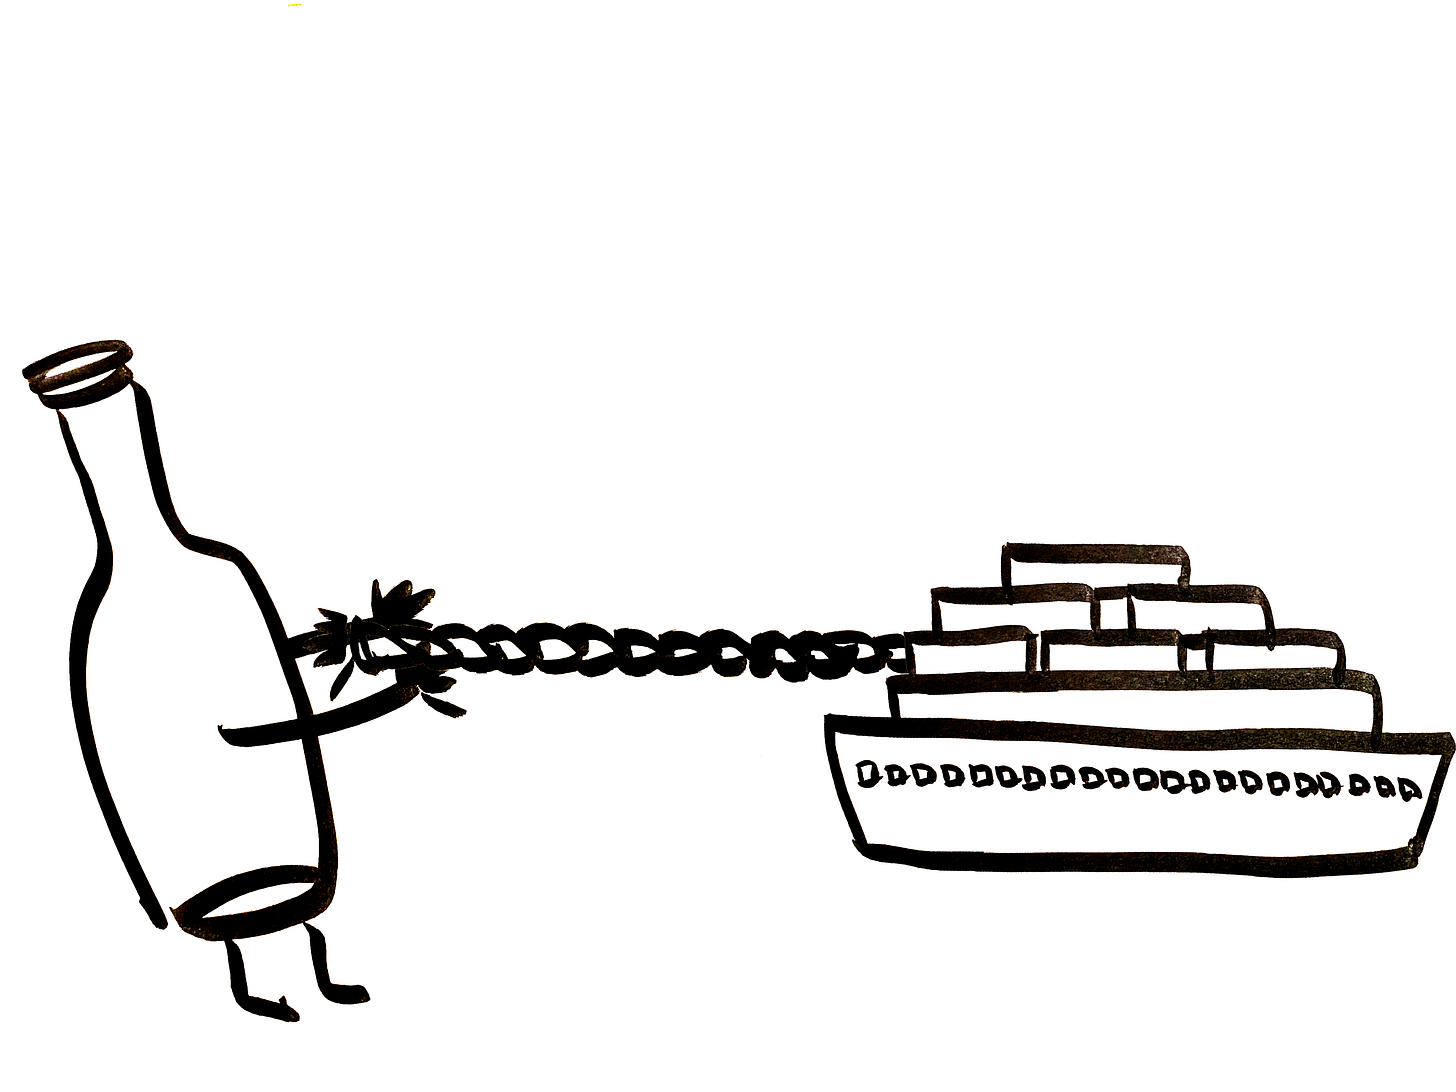 An anthropomorphic wine bottle tugs a container ship